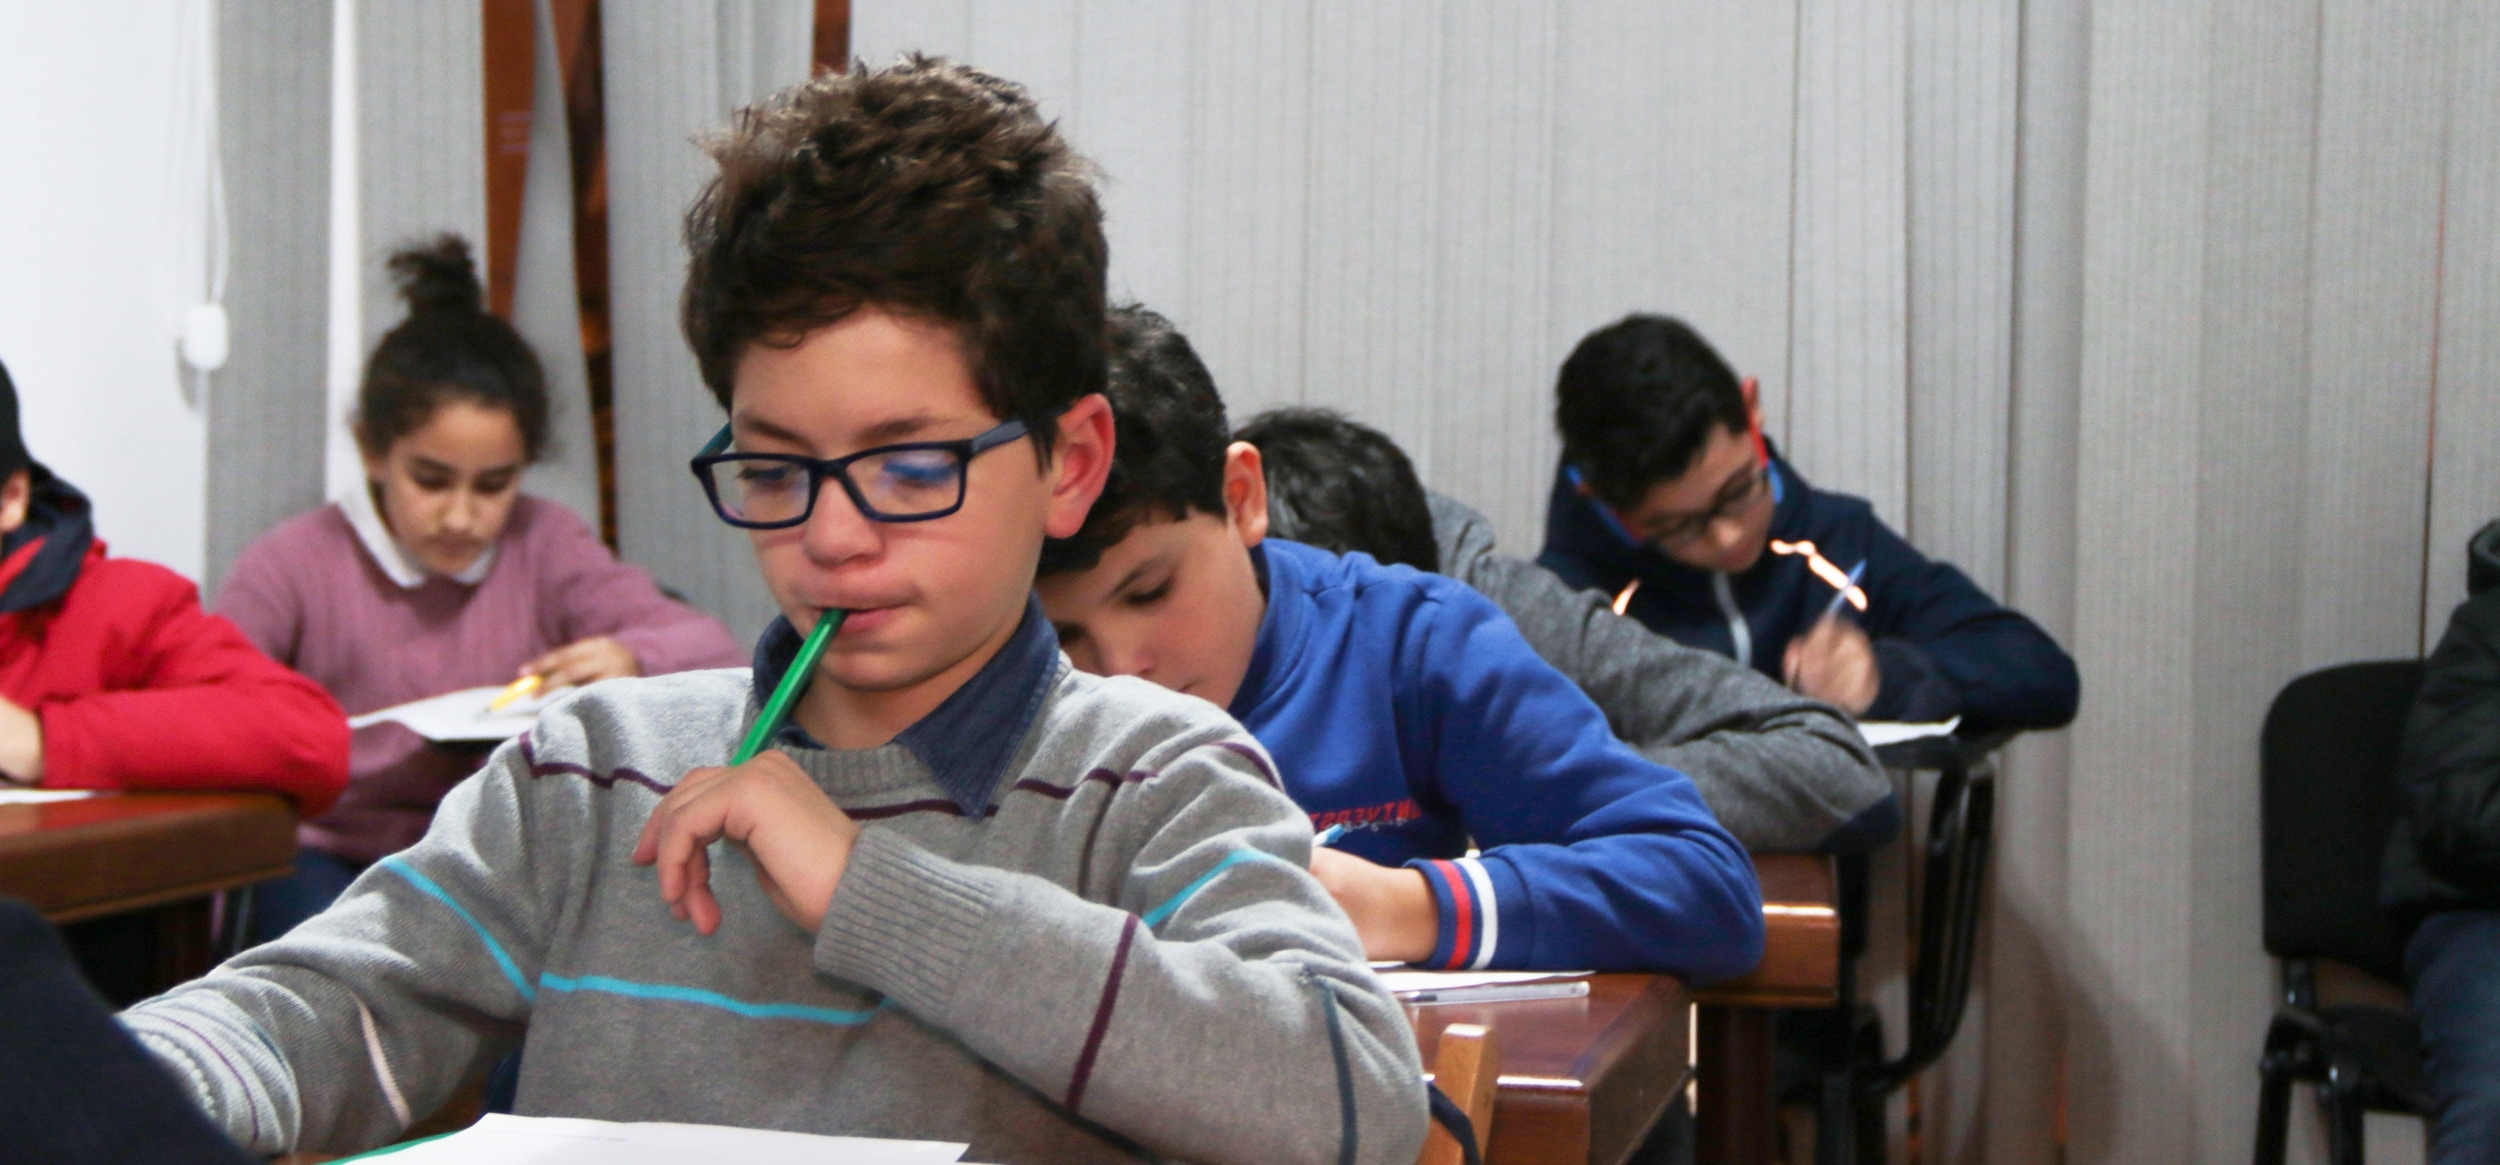 Cambridge English Exams - The Tetouan British Centre is a test centre for Cambridge English exams.